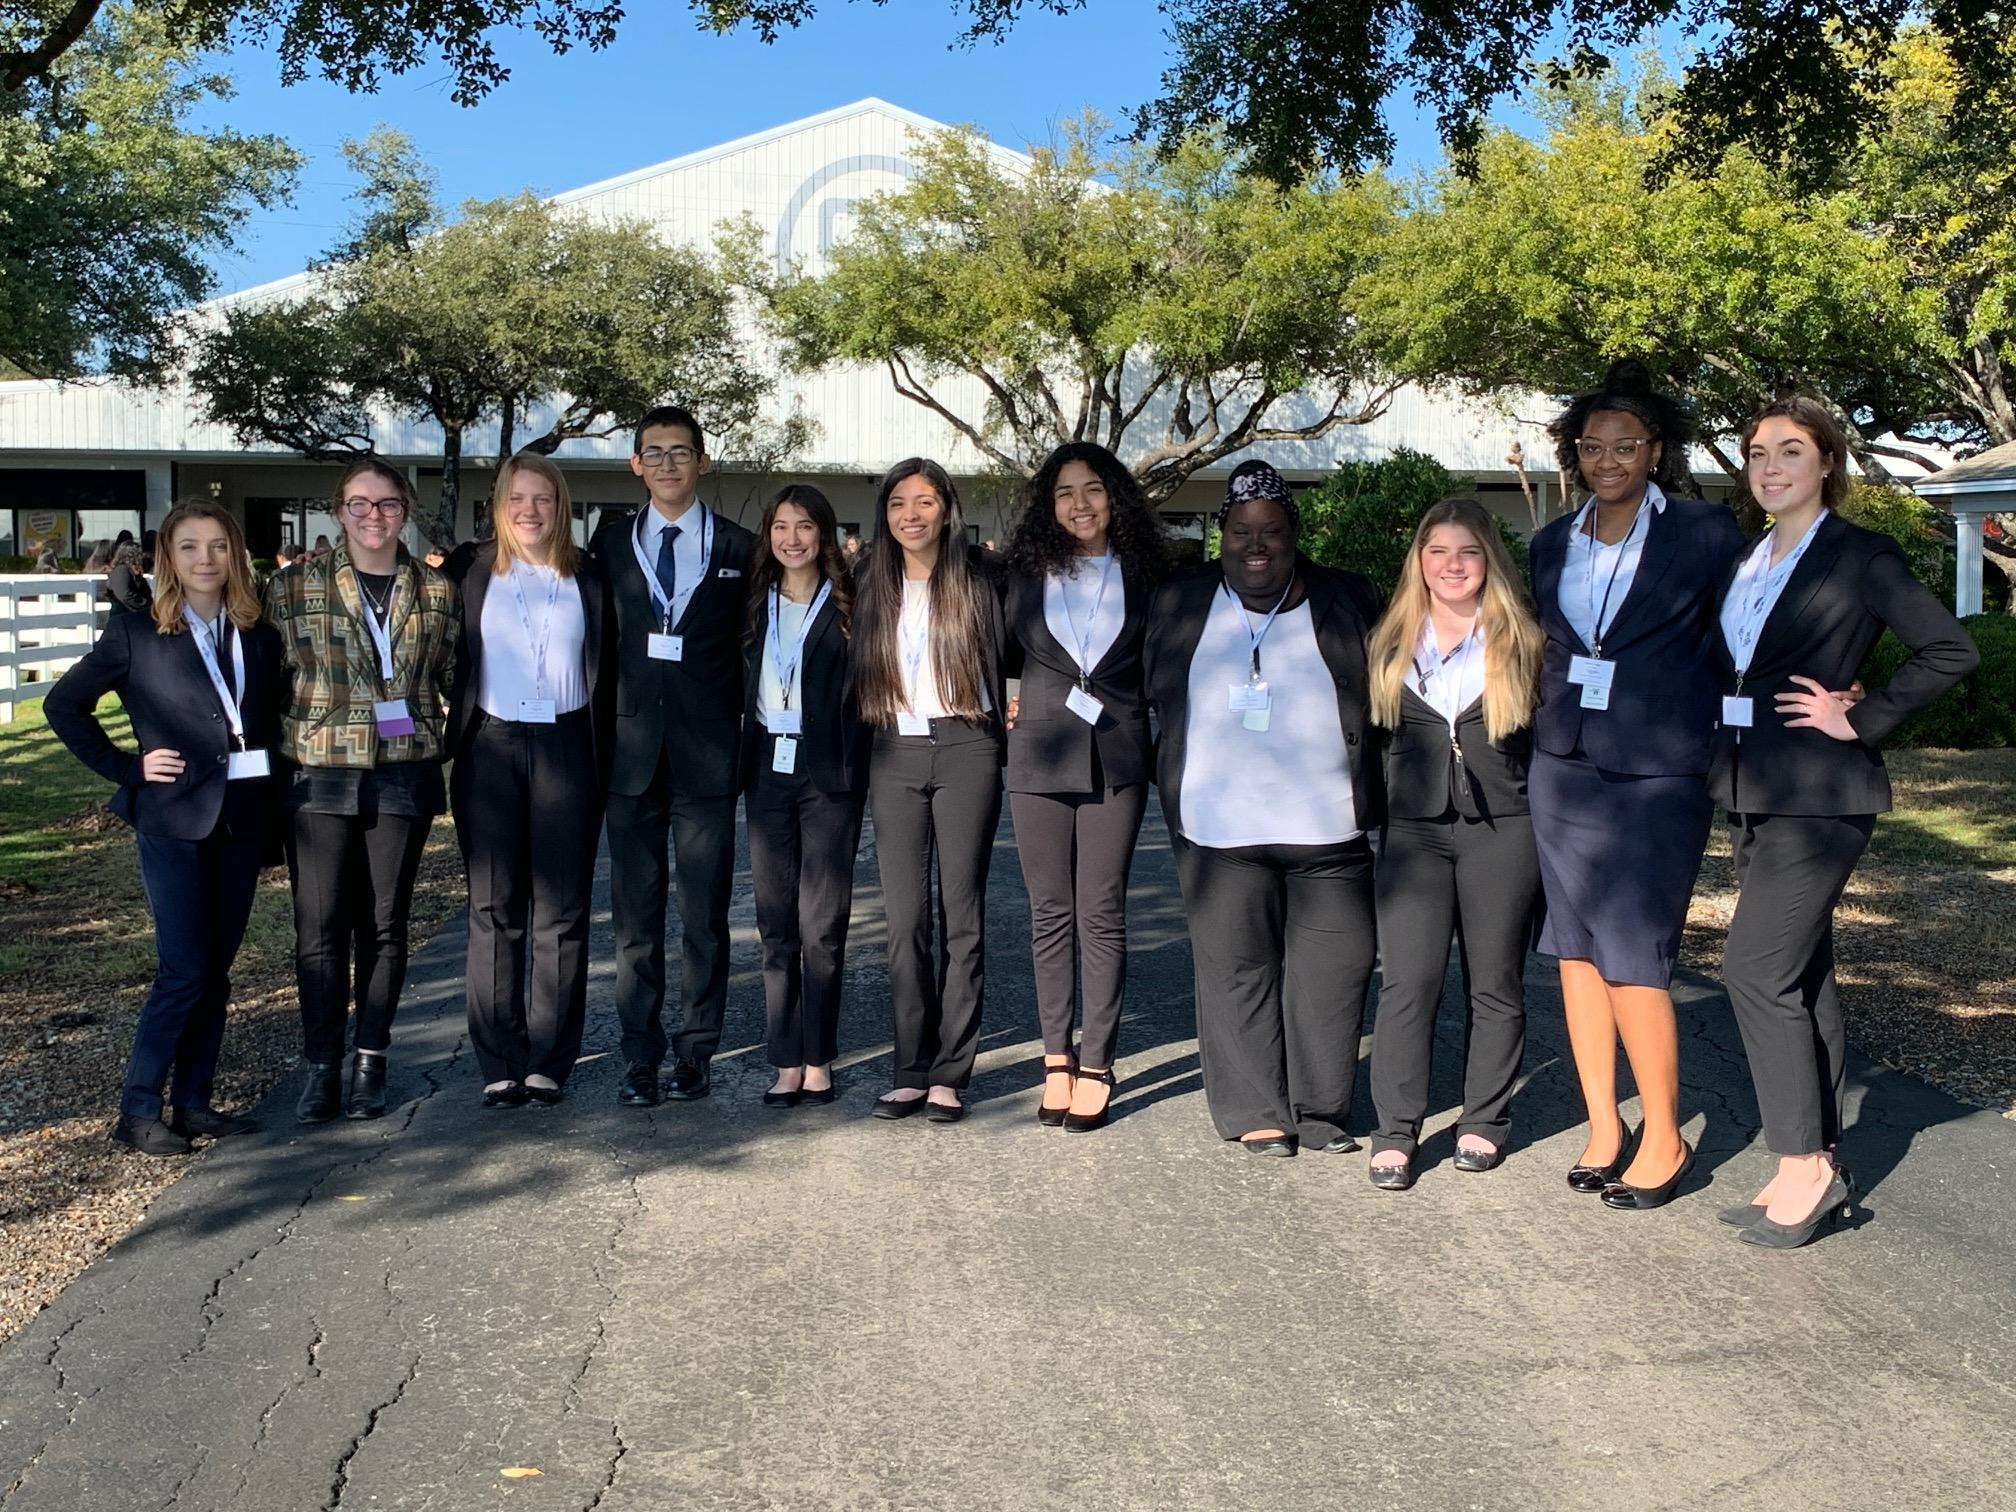 11 future health professional students pose in suits at leadership conference